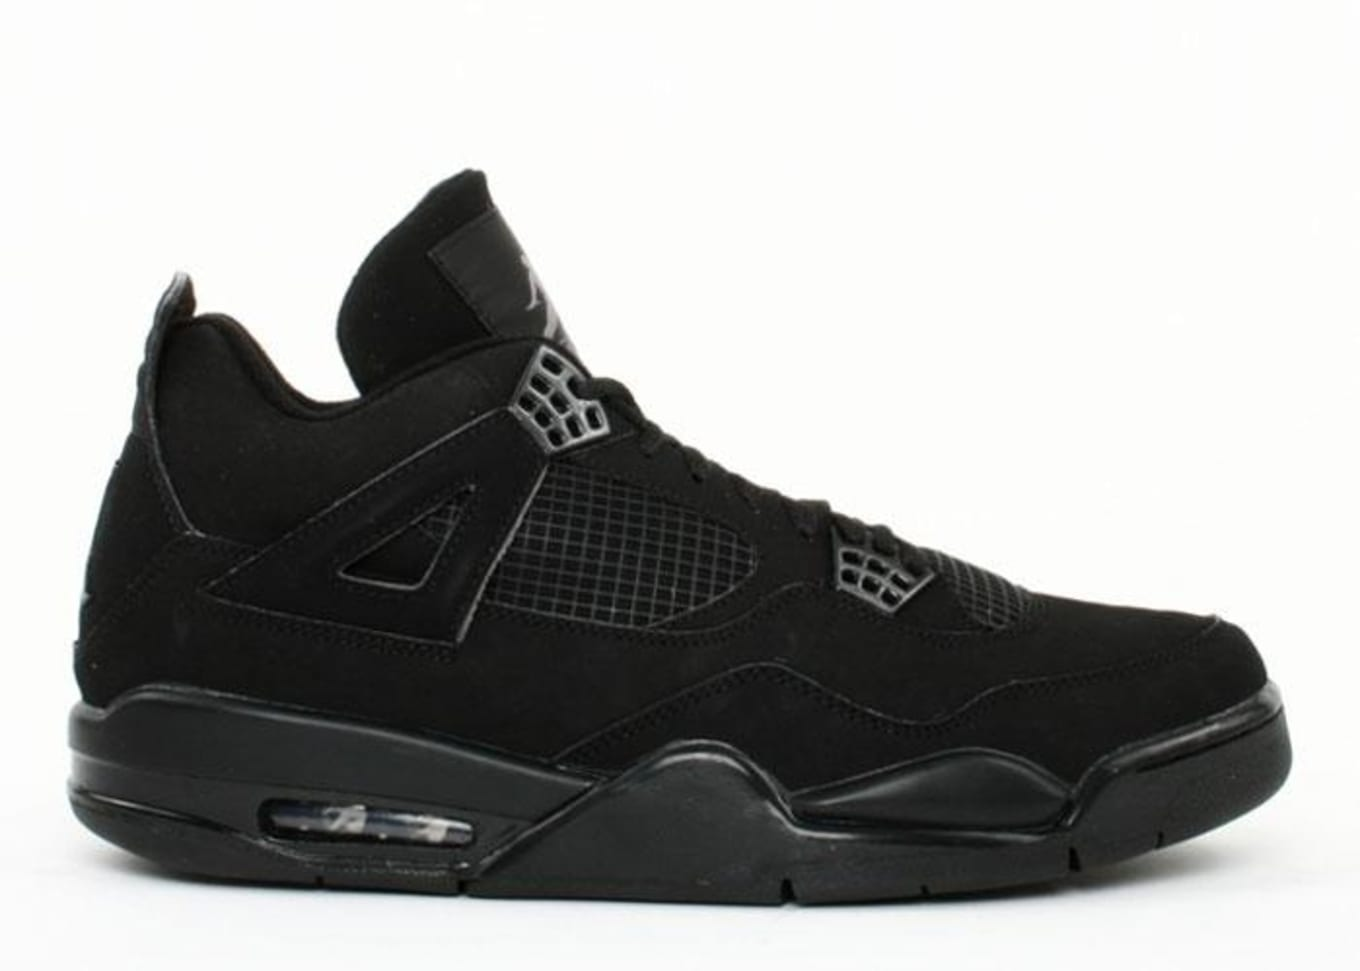 new arrival 3e369 d6163 Air Jordan 4 Retro